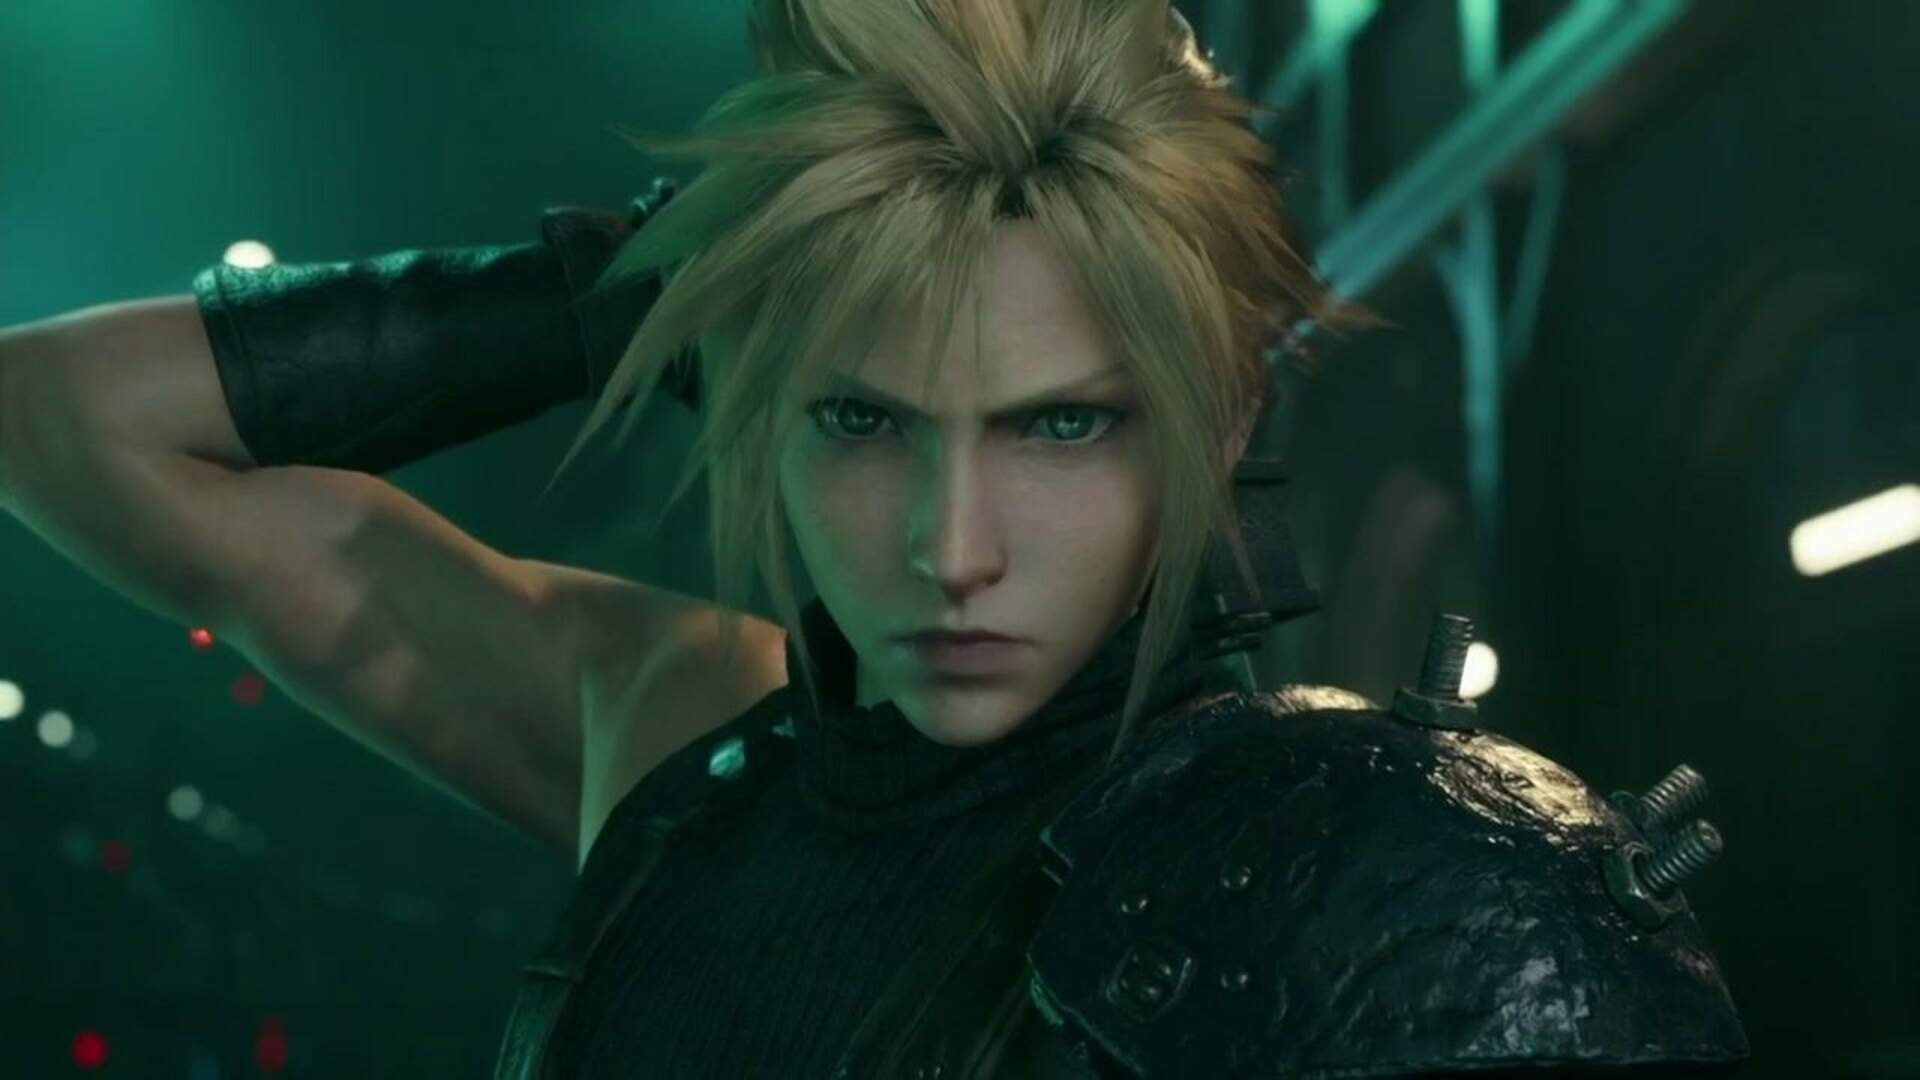 Final Fantasy 7 Remake Voice Actors The Voice Cast In The